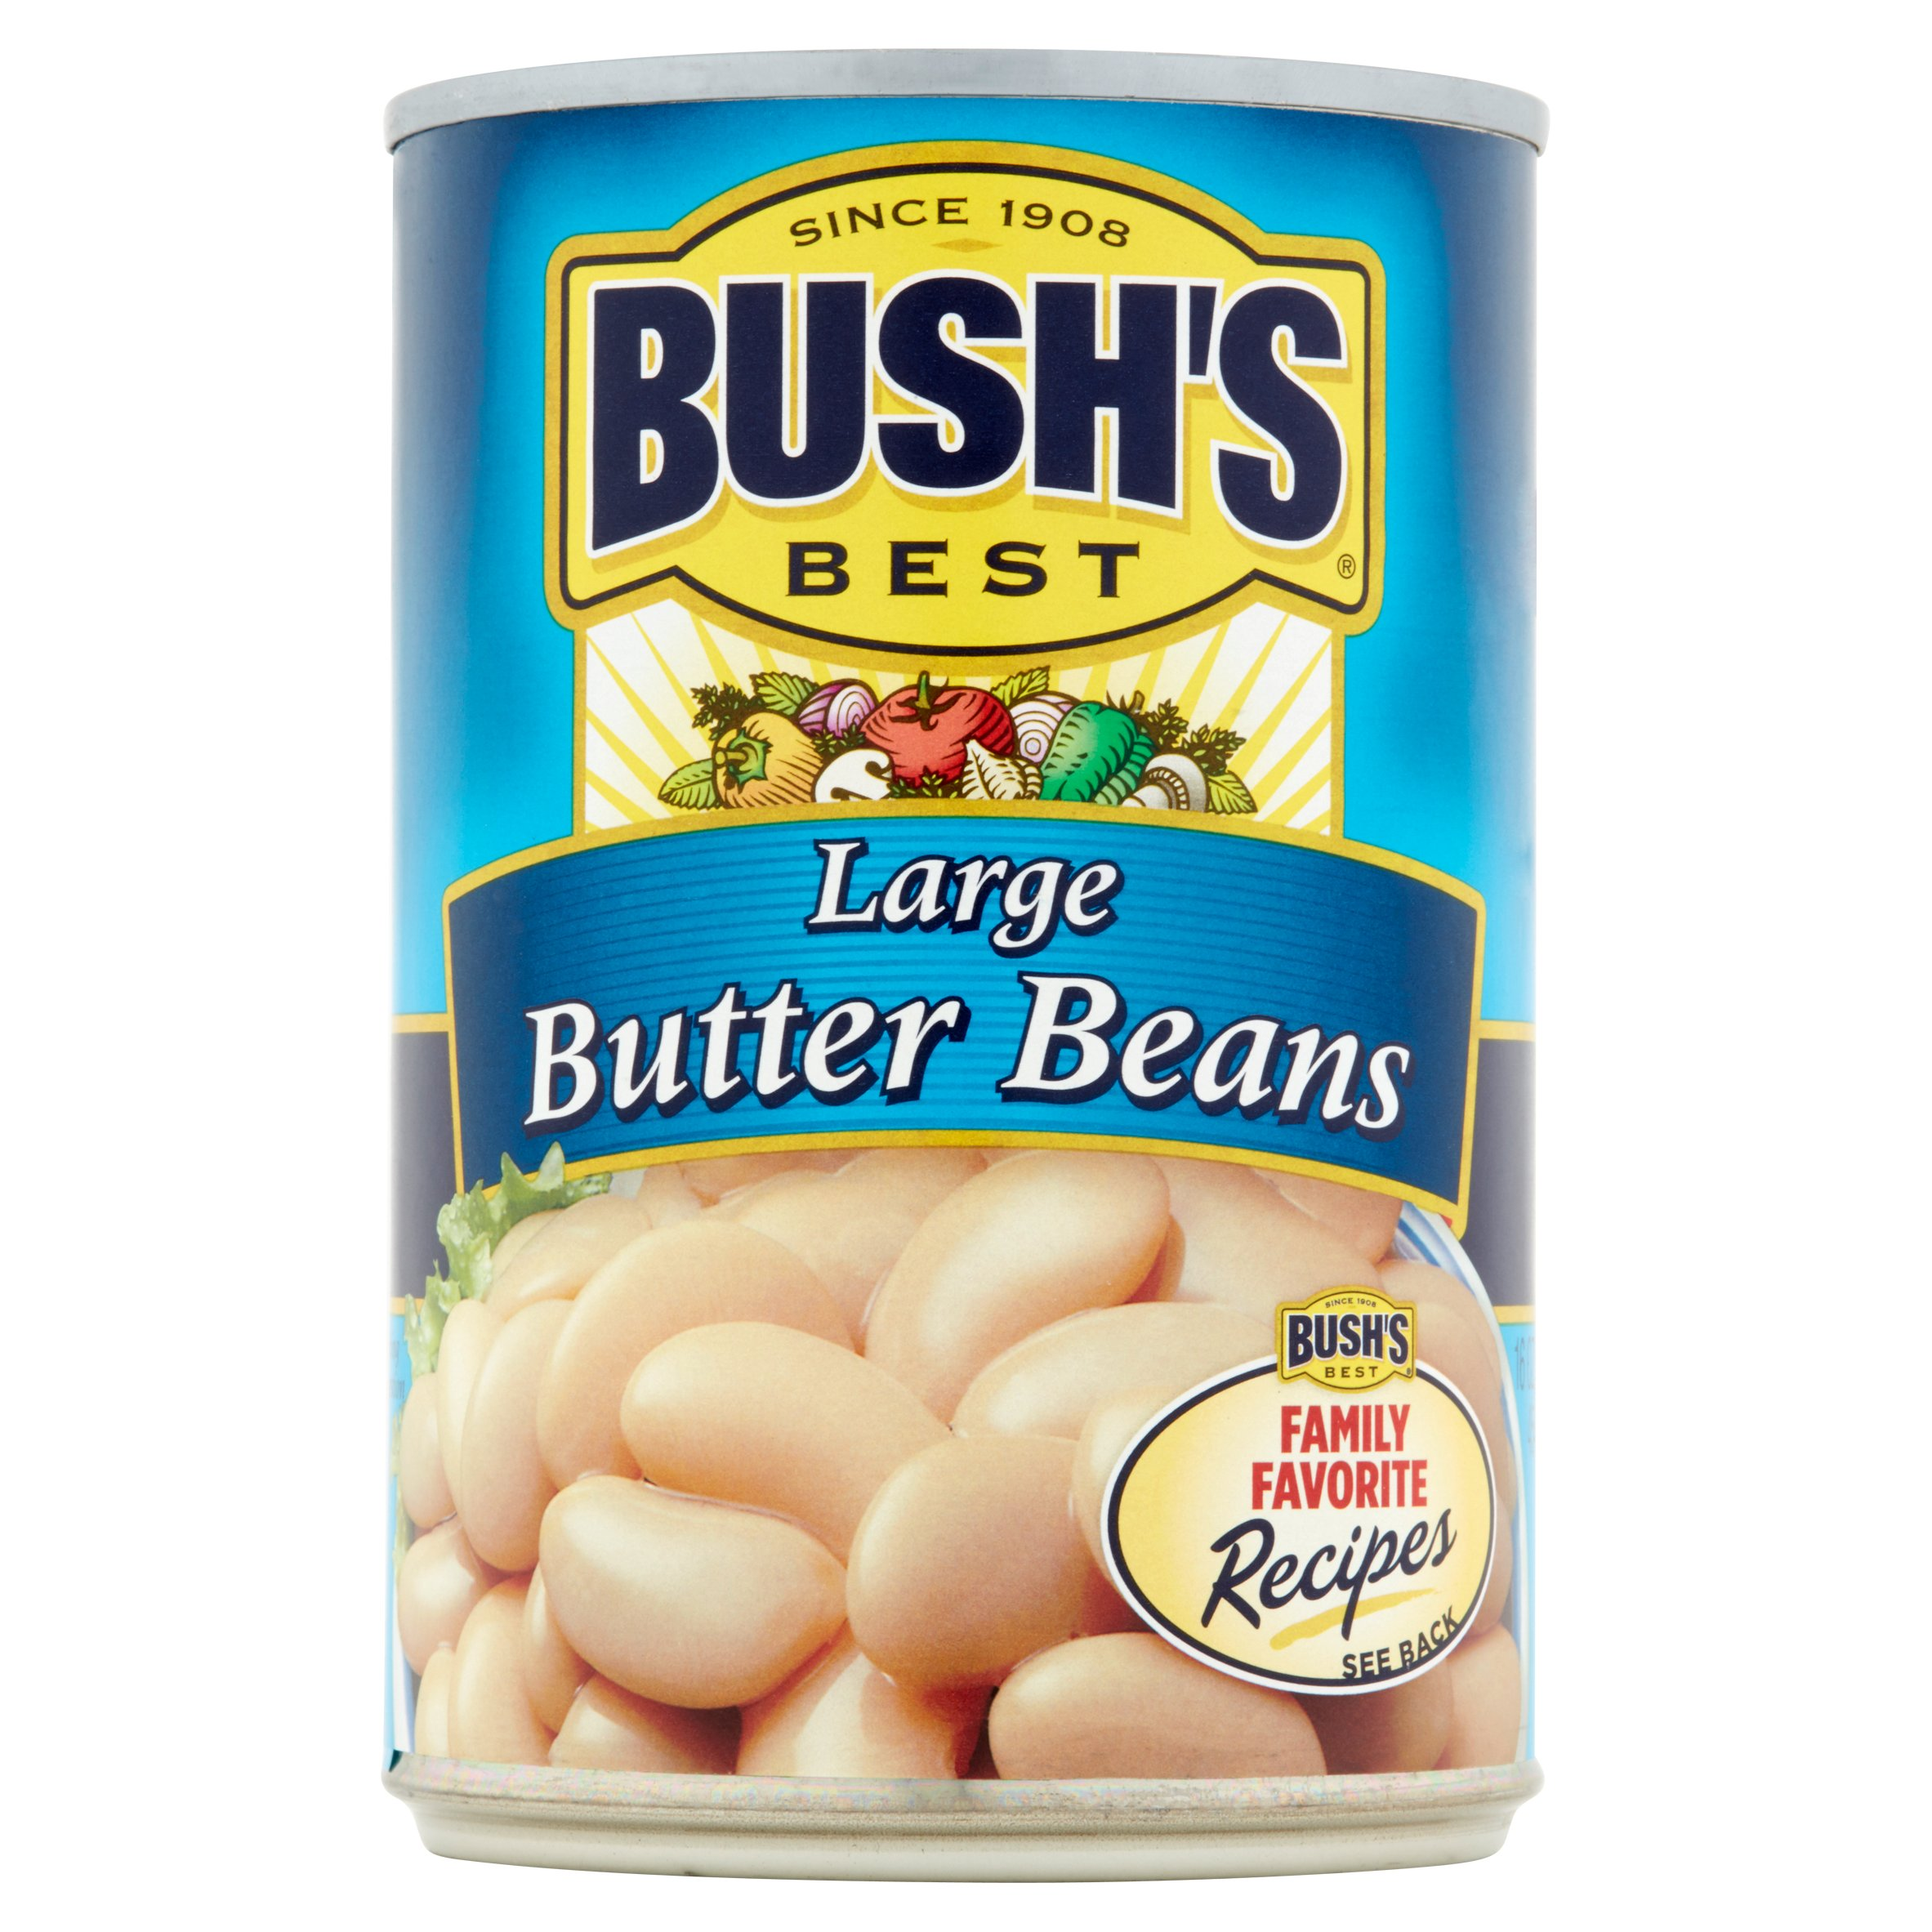 Bush's Best Large Butter Beans, 16 oz by Bush Brothers & Company